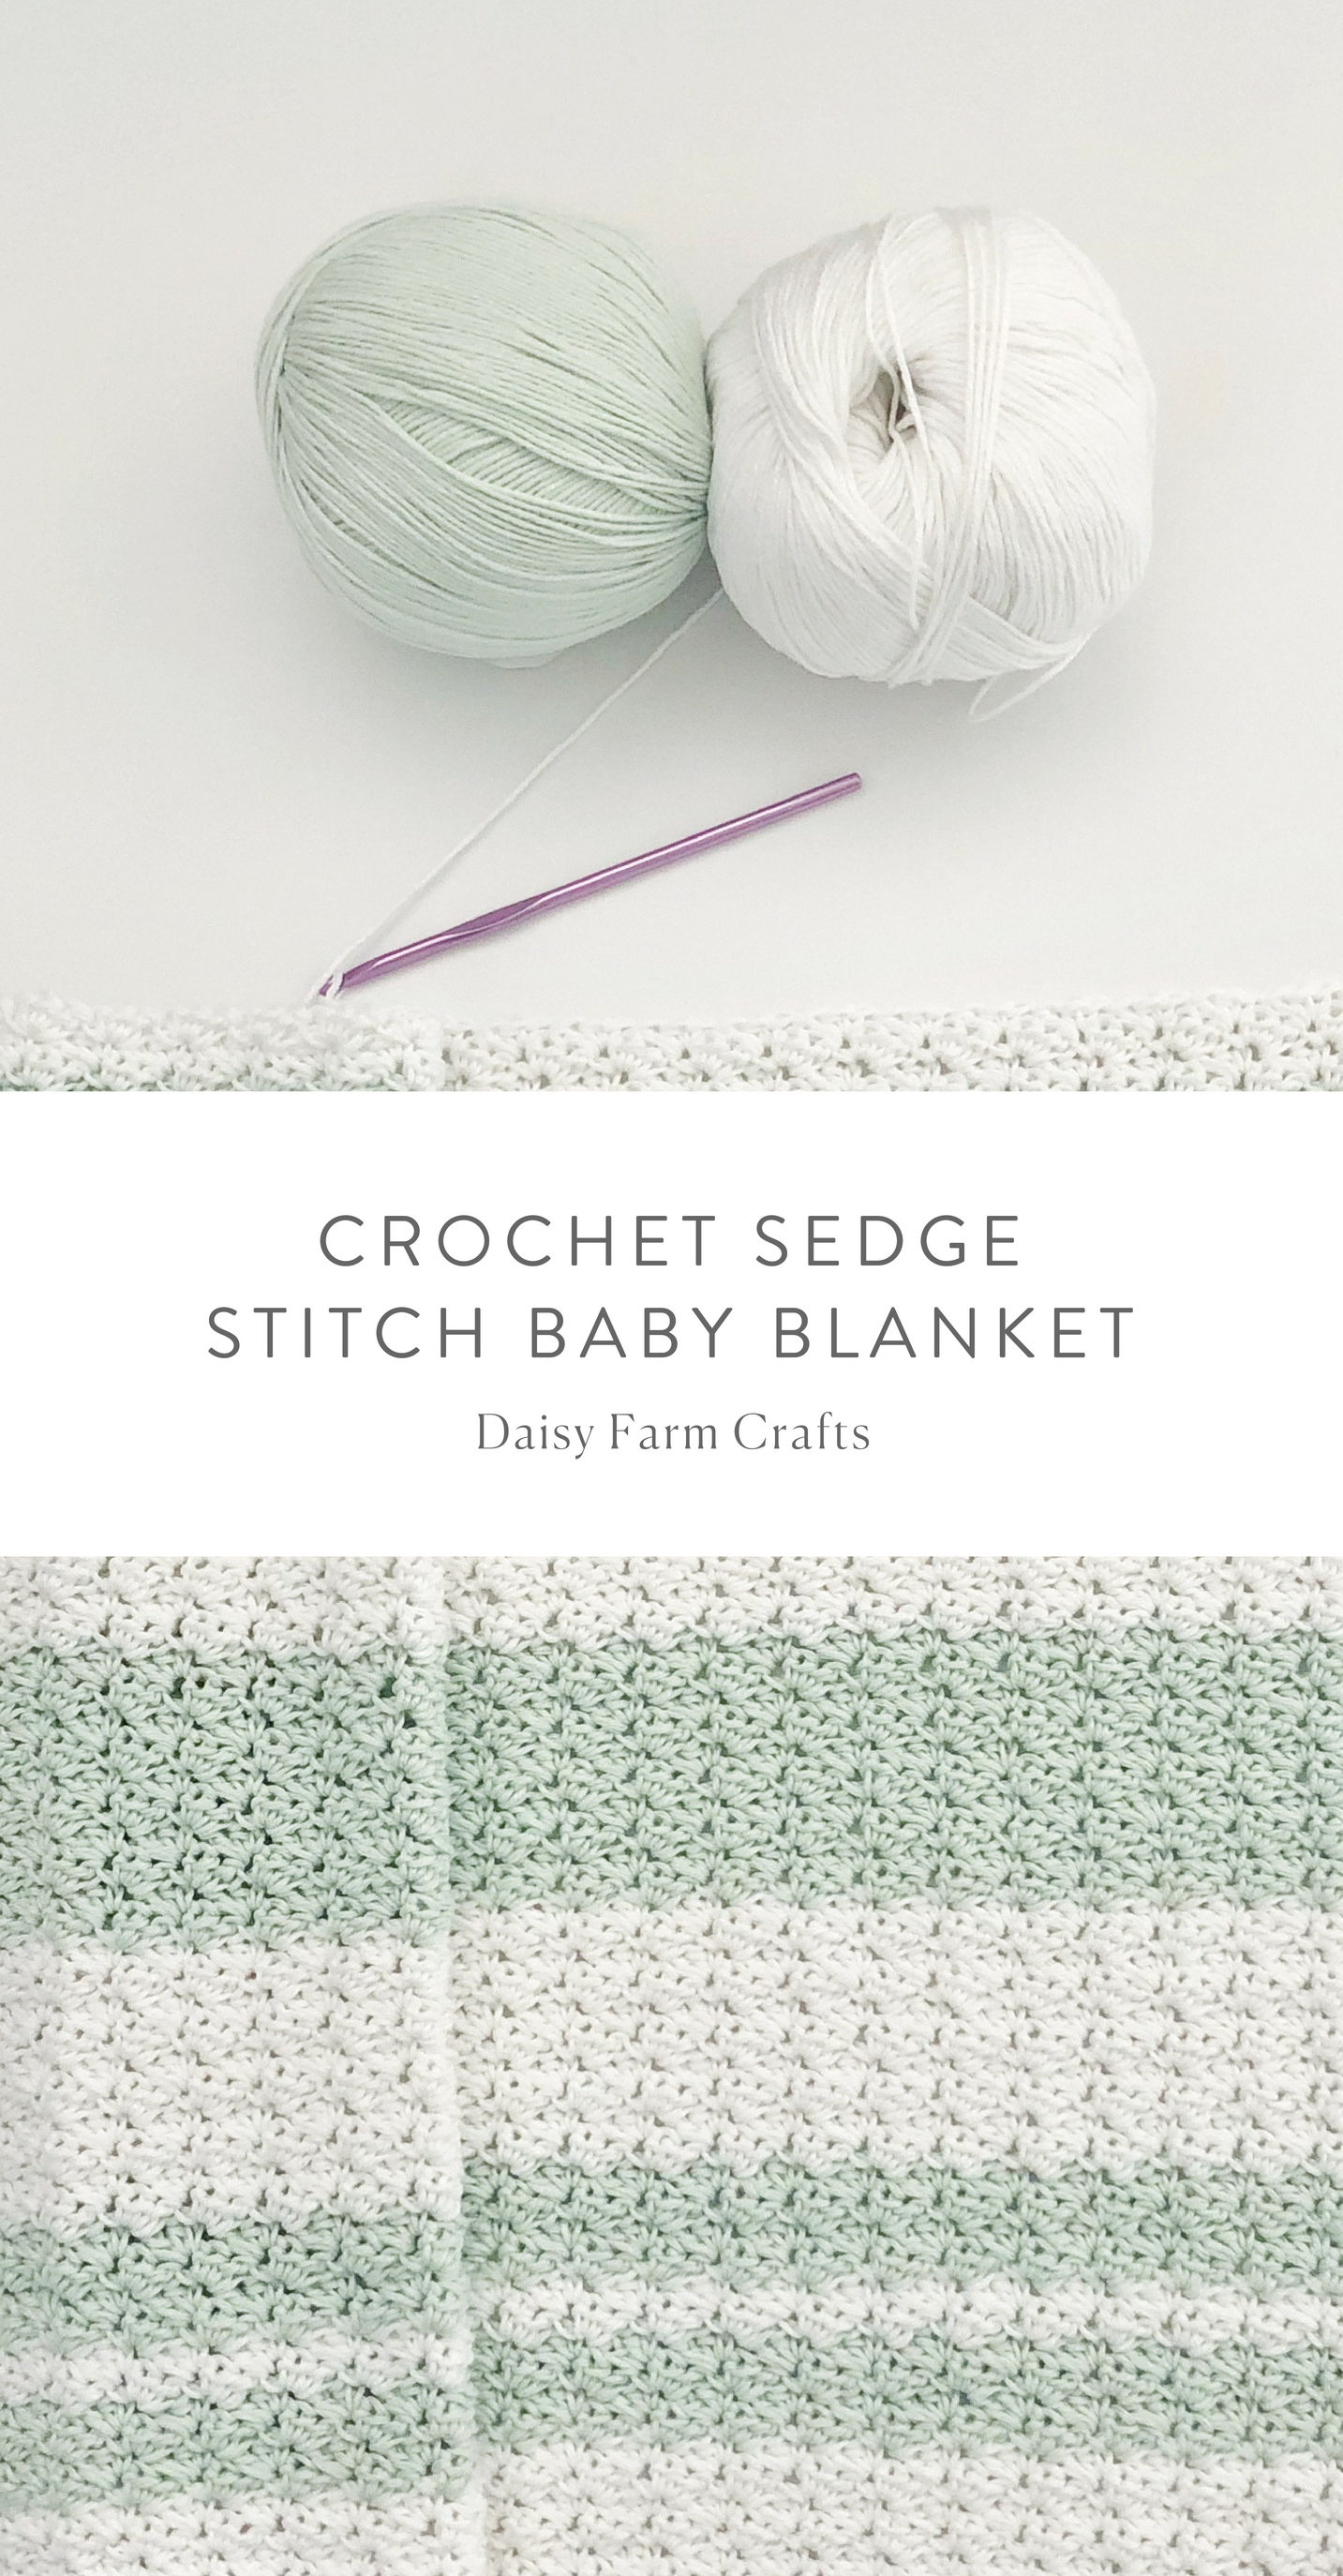 Free Pattern - Crochet Sedge Stitch Baby Blanket #crochet | knit2 ...